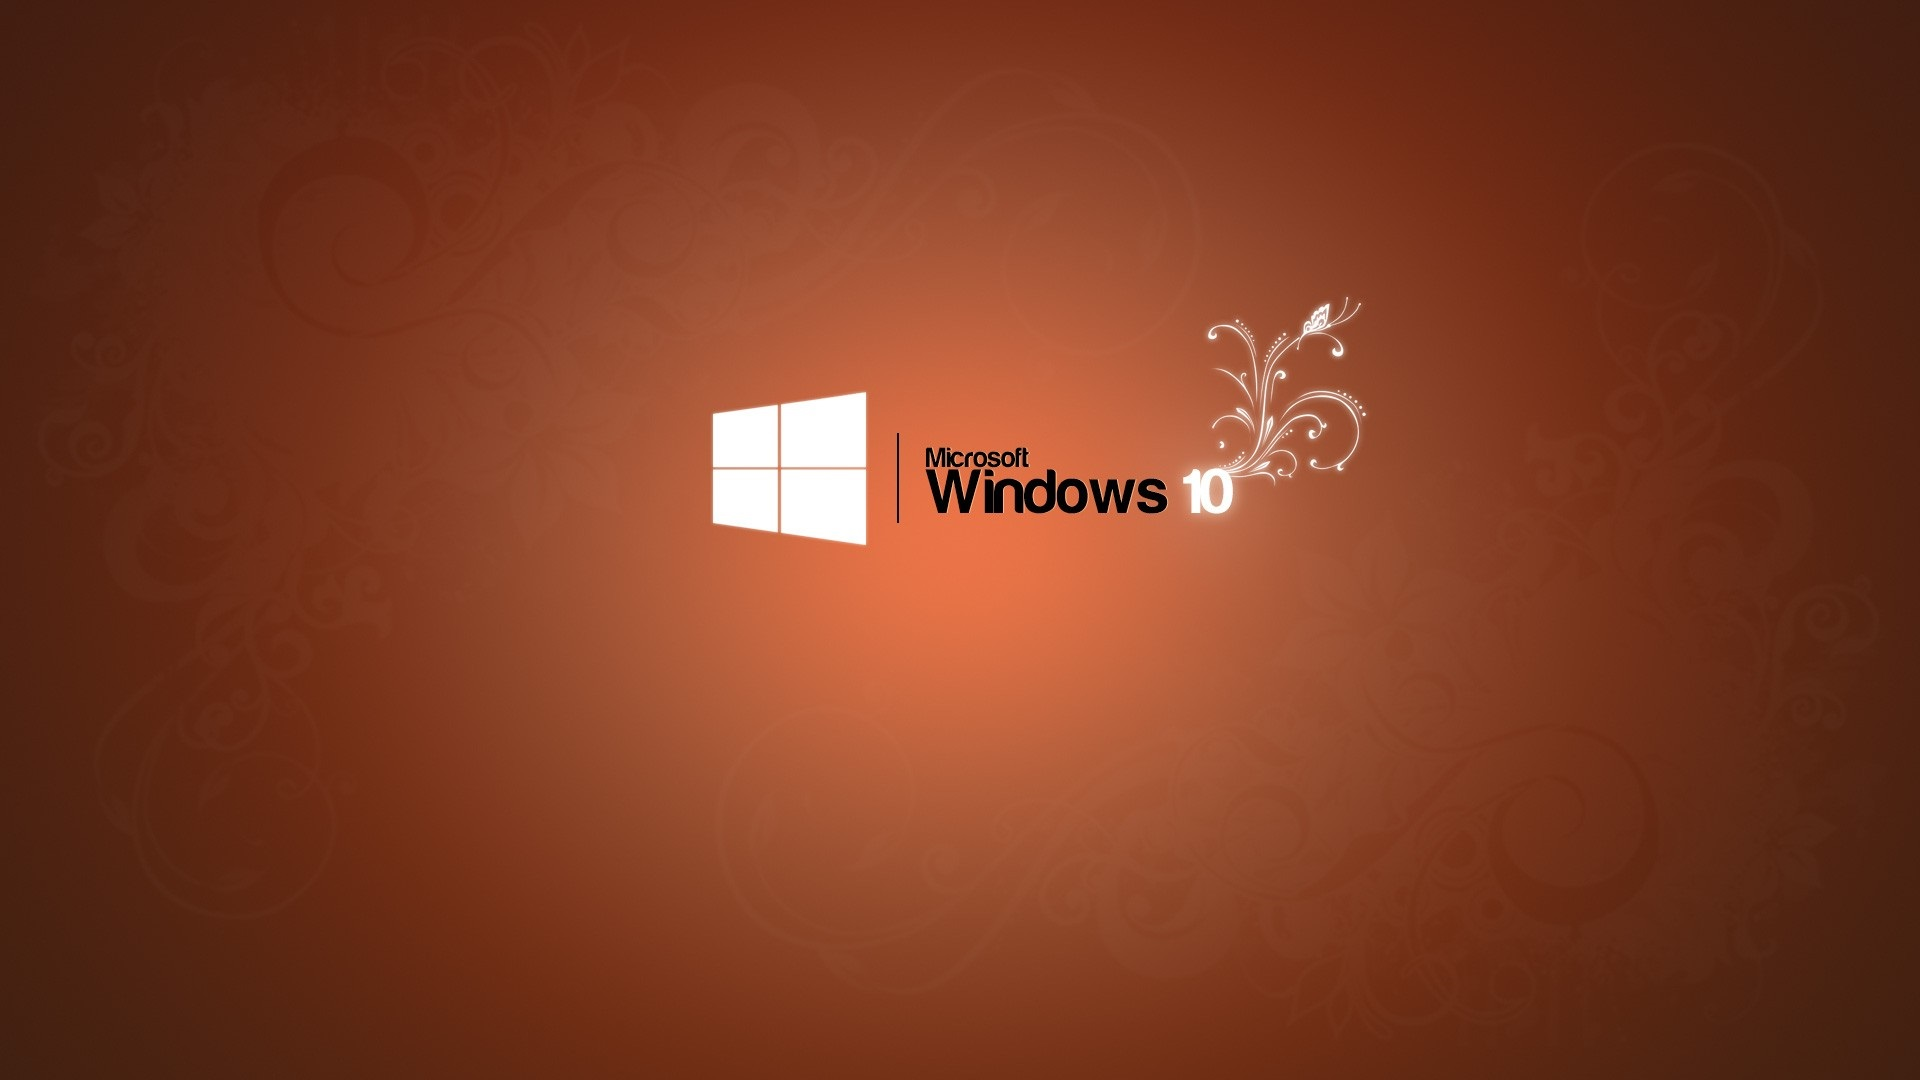 Wallpaper Microsoft Windows 10 Logo Orange Background 1920x1080